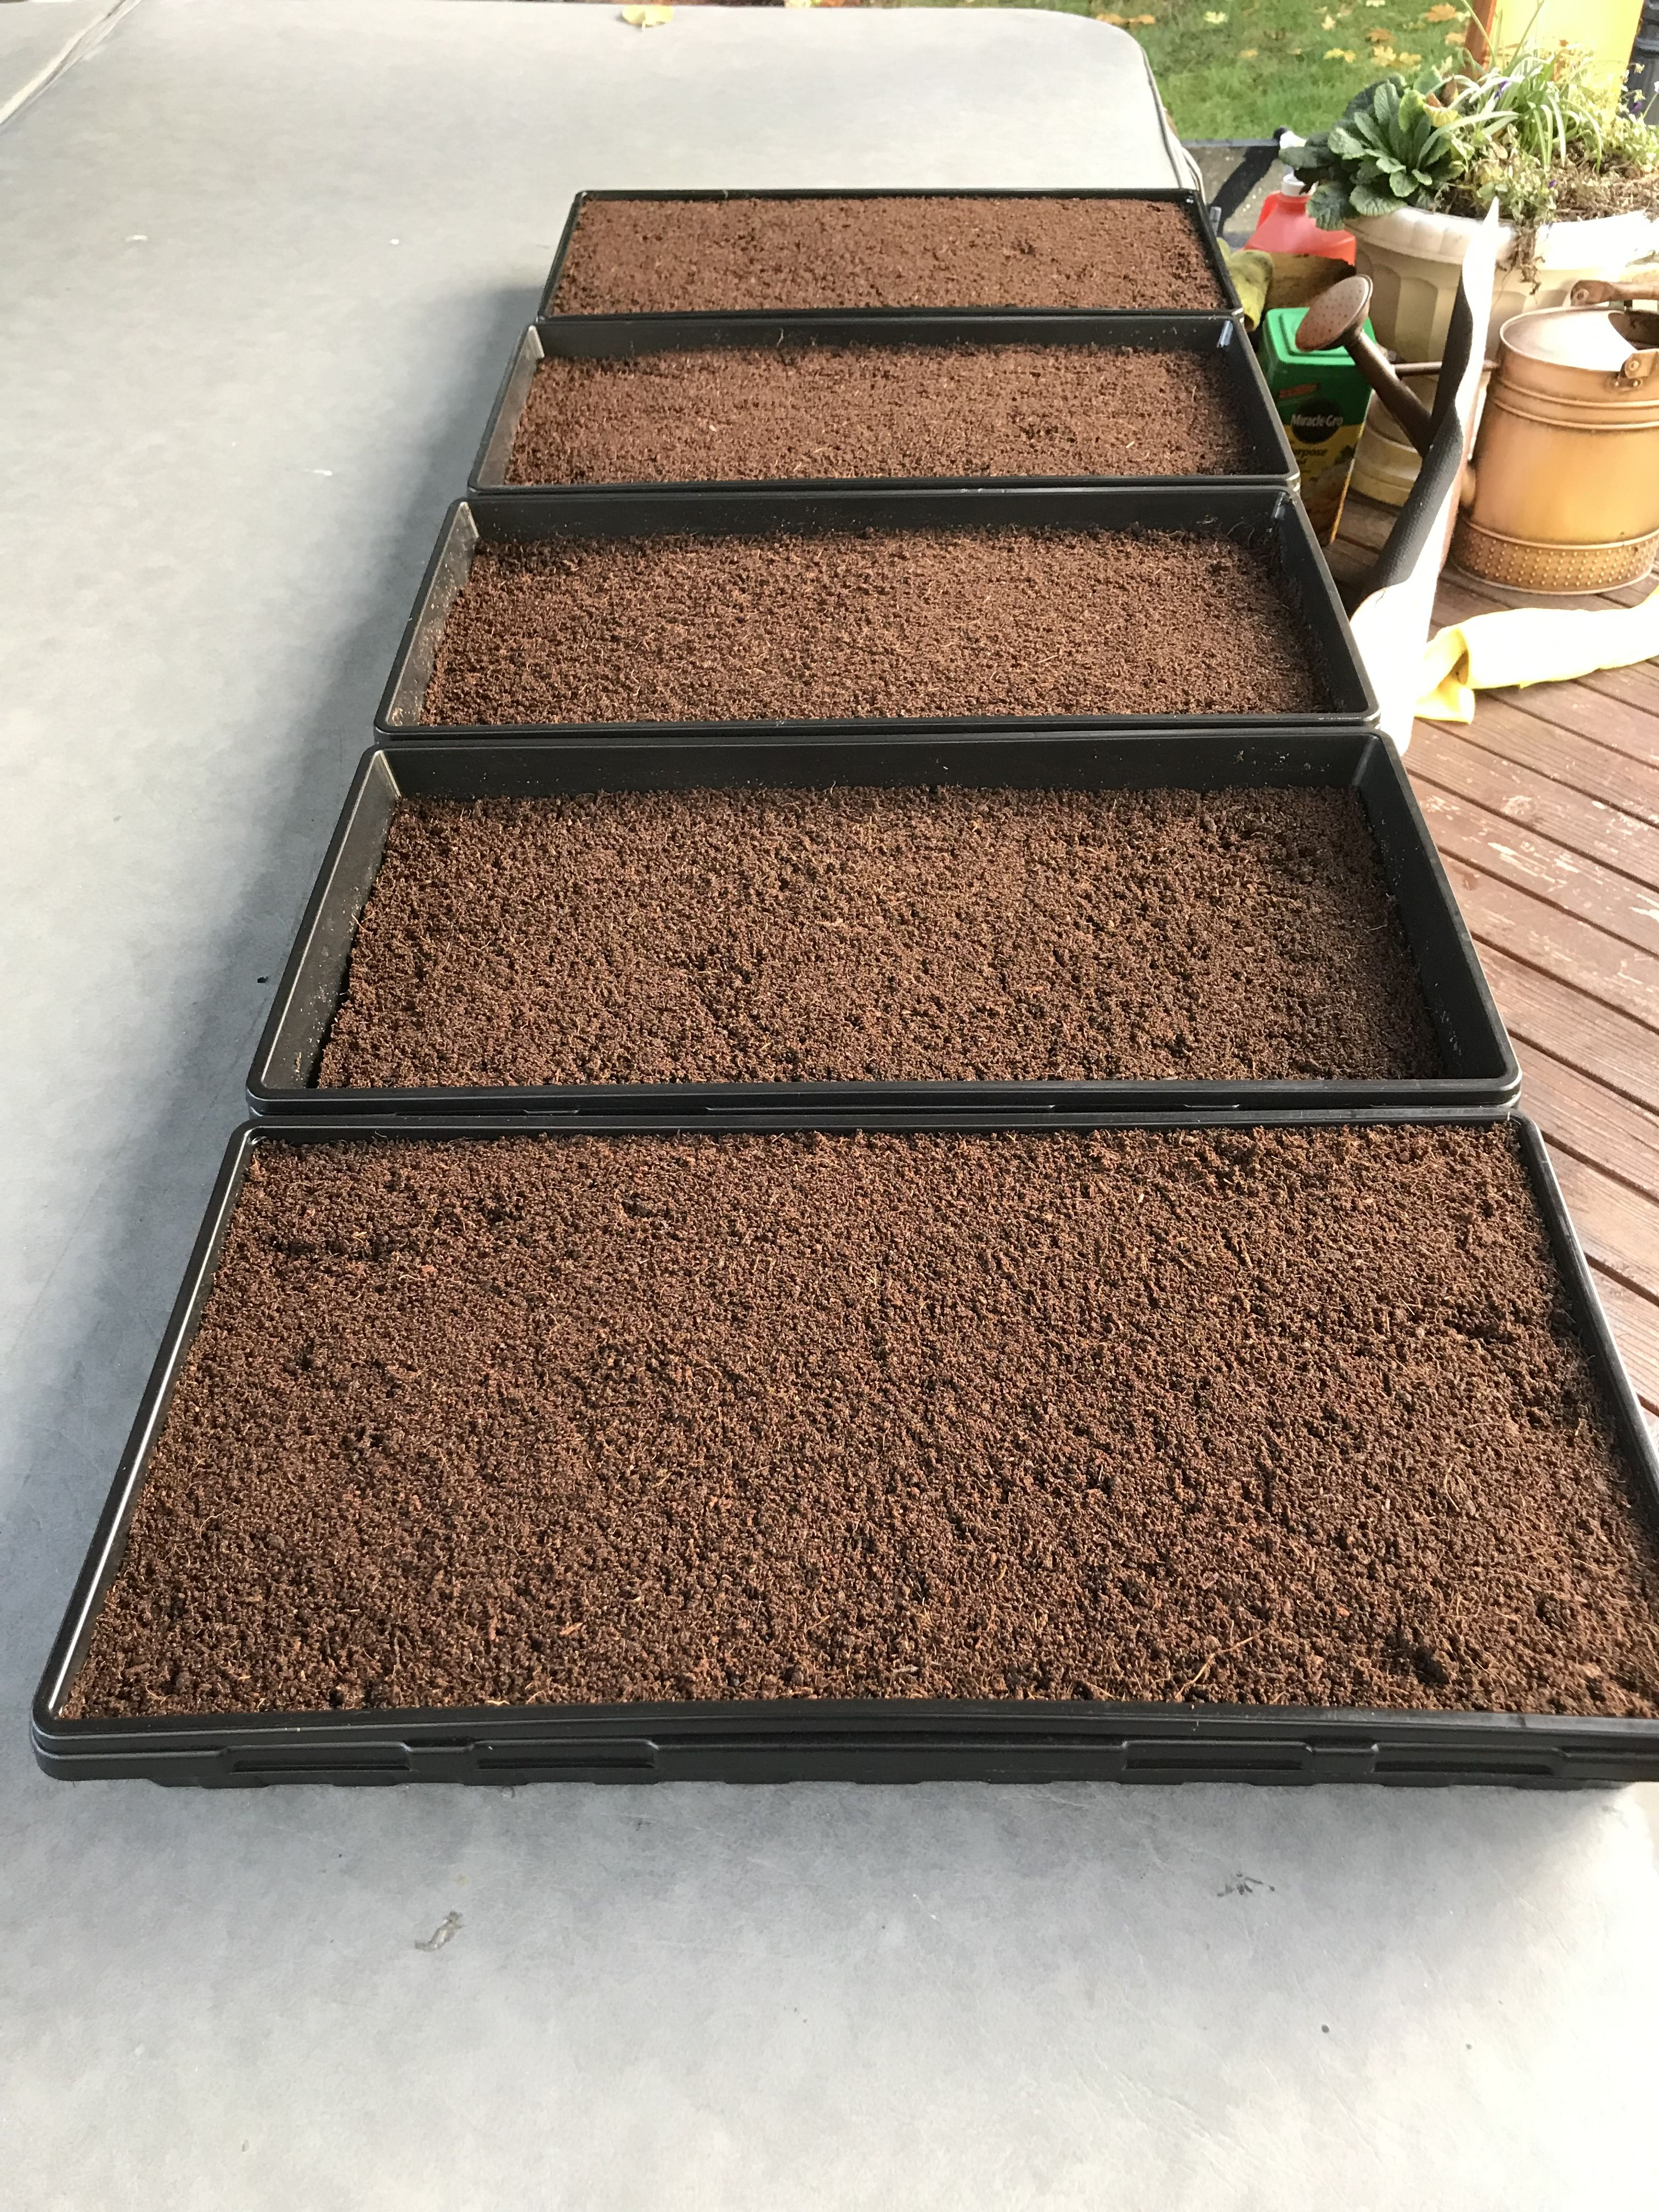 Coco coir and peat moss mix | Microgreens | Peat moss, Coir